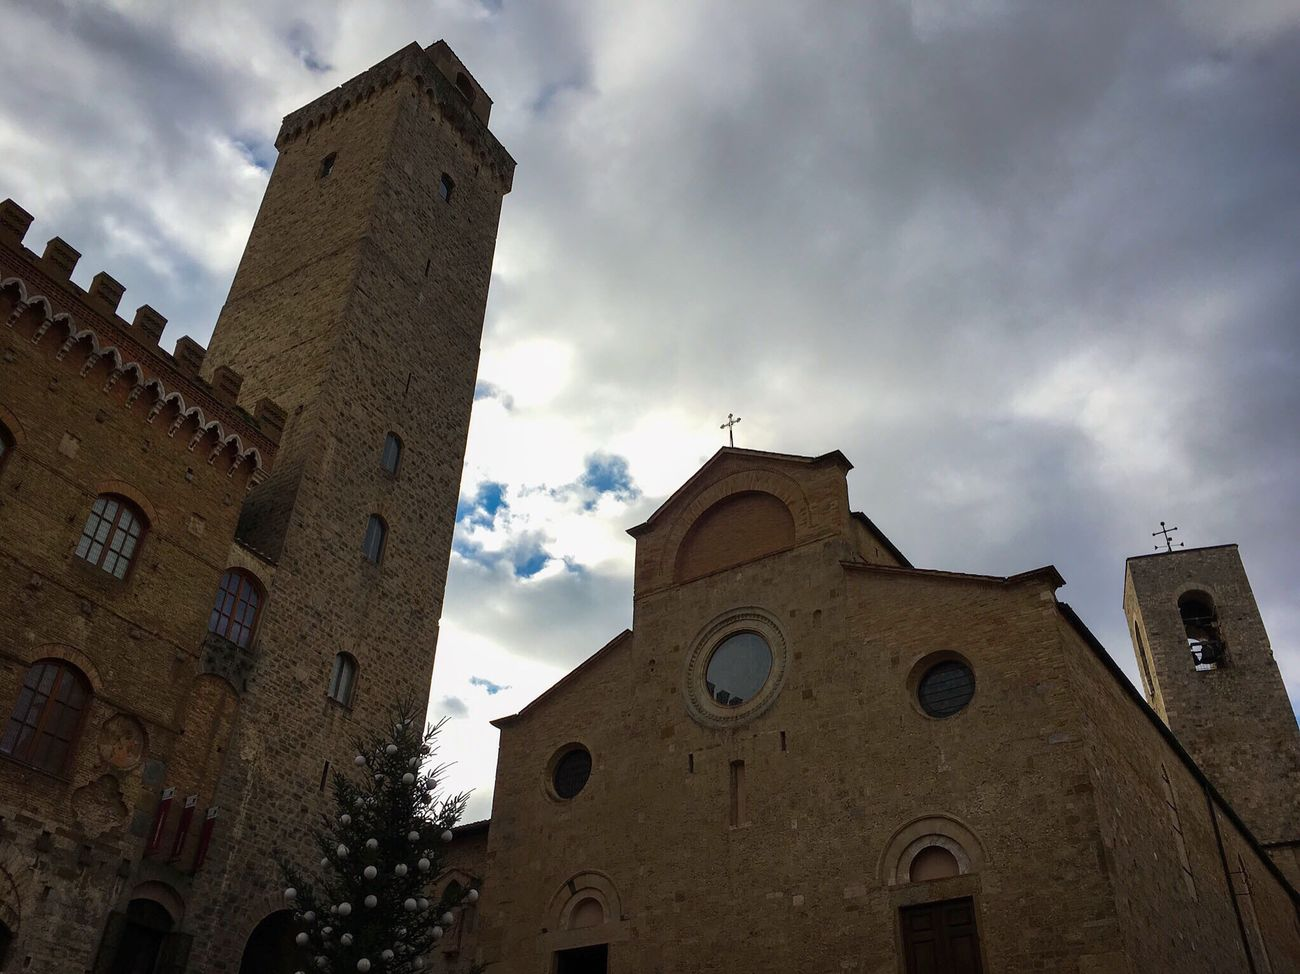 San Gimignano Sky Building Exterior Low Angle View Cloud - Sky Religion Spirituality Church Spiritual No People Christmas Tree Christmastime Italia Architecture Historical Building Light And Shadow Traveling Travel Travel Photography Travelphotography Light And Shadows Streetphotography Italy Toscana Tuscany